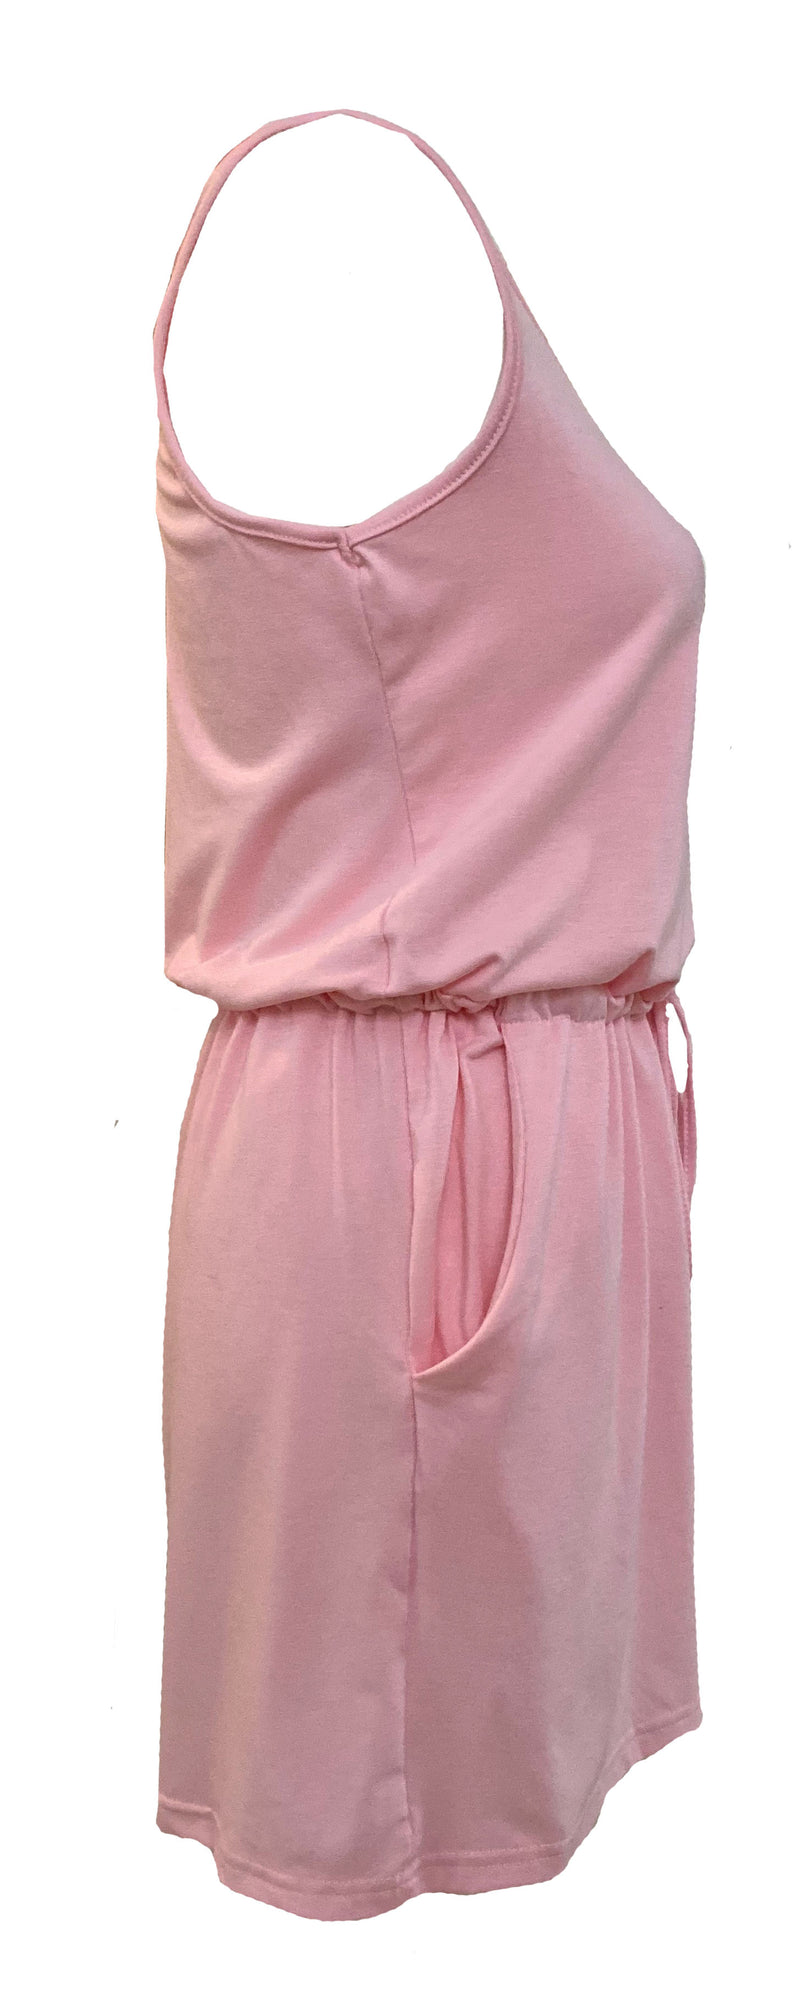 Women's Pink Summer Sleeveless Tank Top Short Jumpsuit.